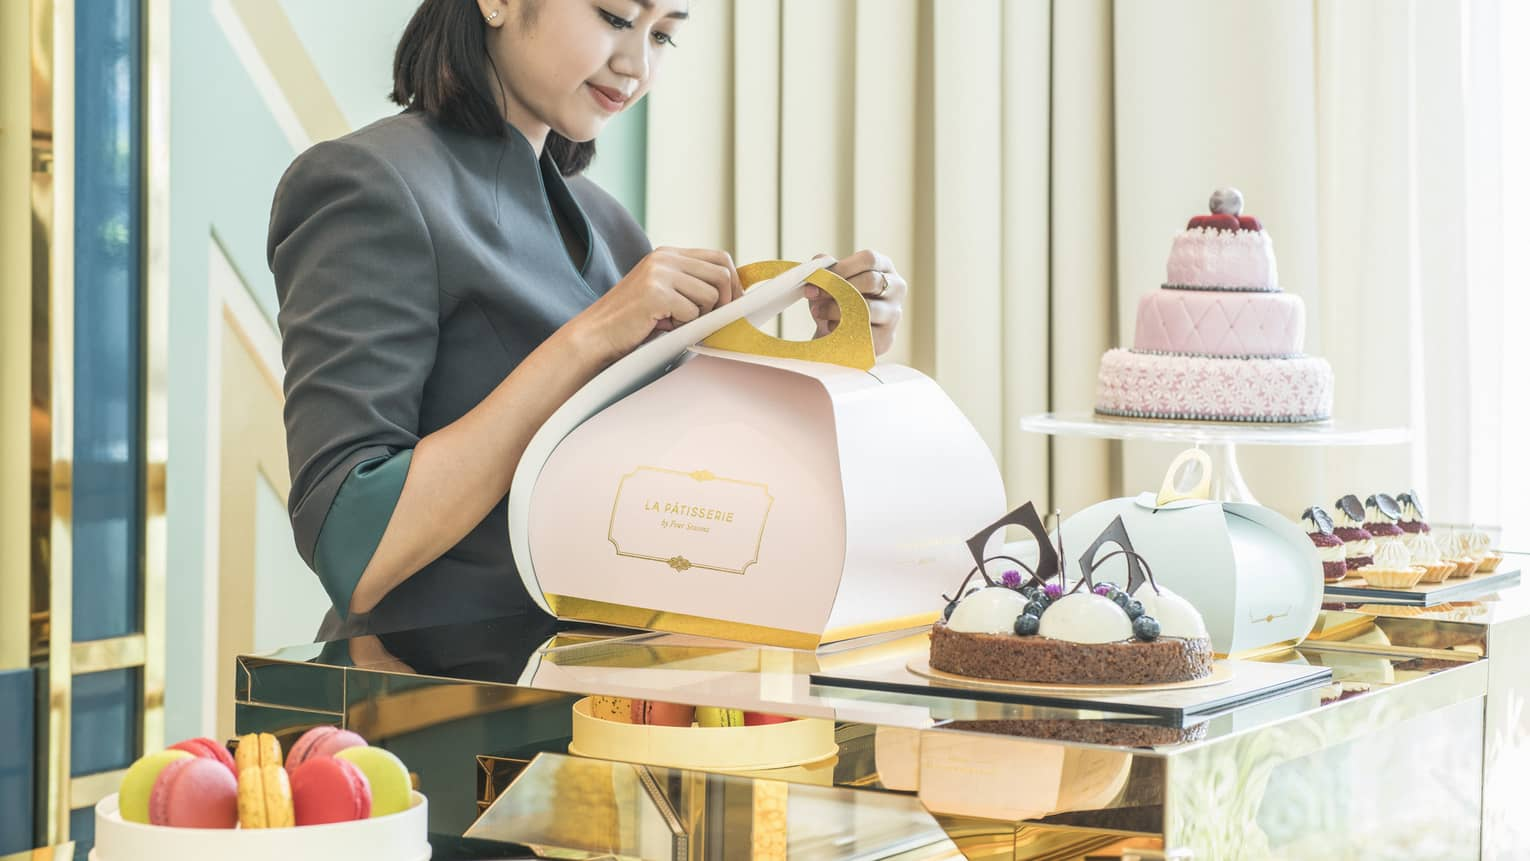 Woman wrapping a pastry in a stylish light pink box for take away